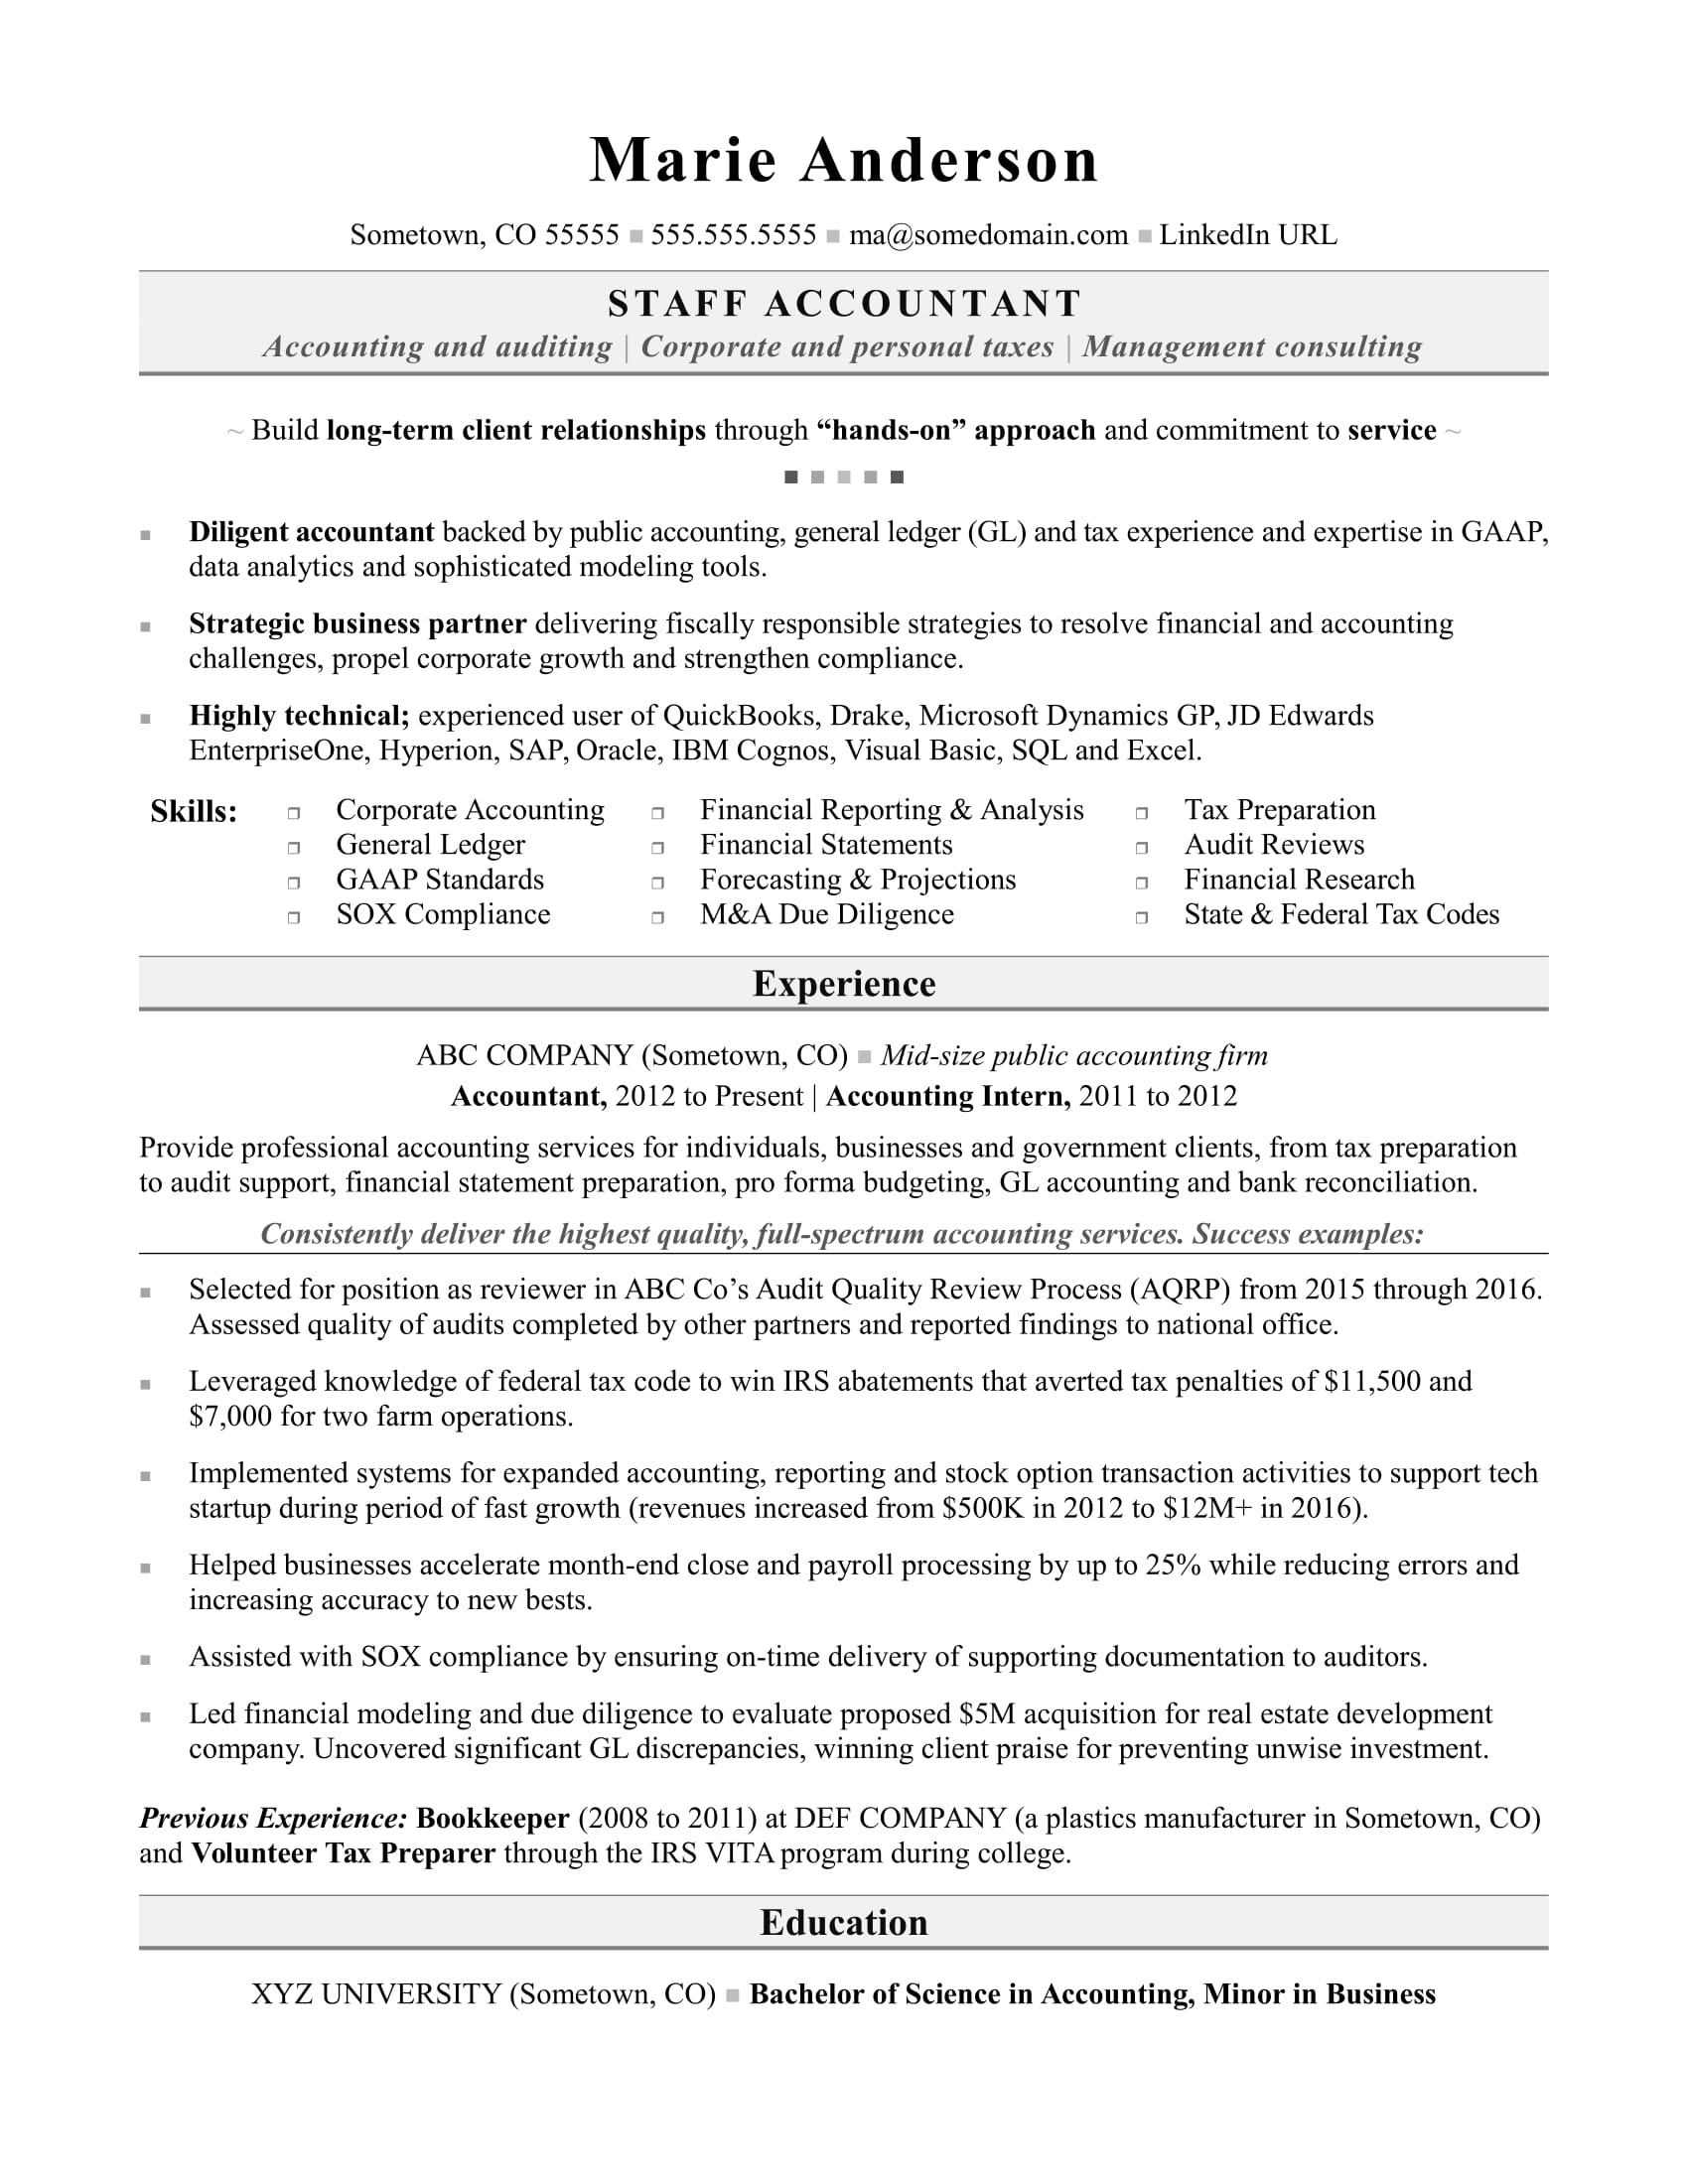 accounting resume sample monster for accountant position objective promotion college tour Resume Resume For Accountant Position